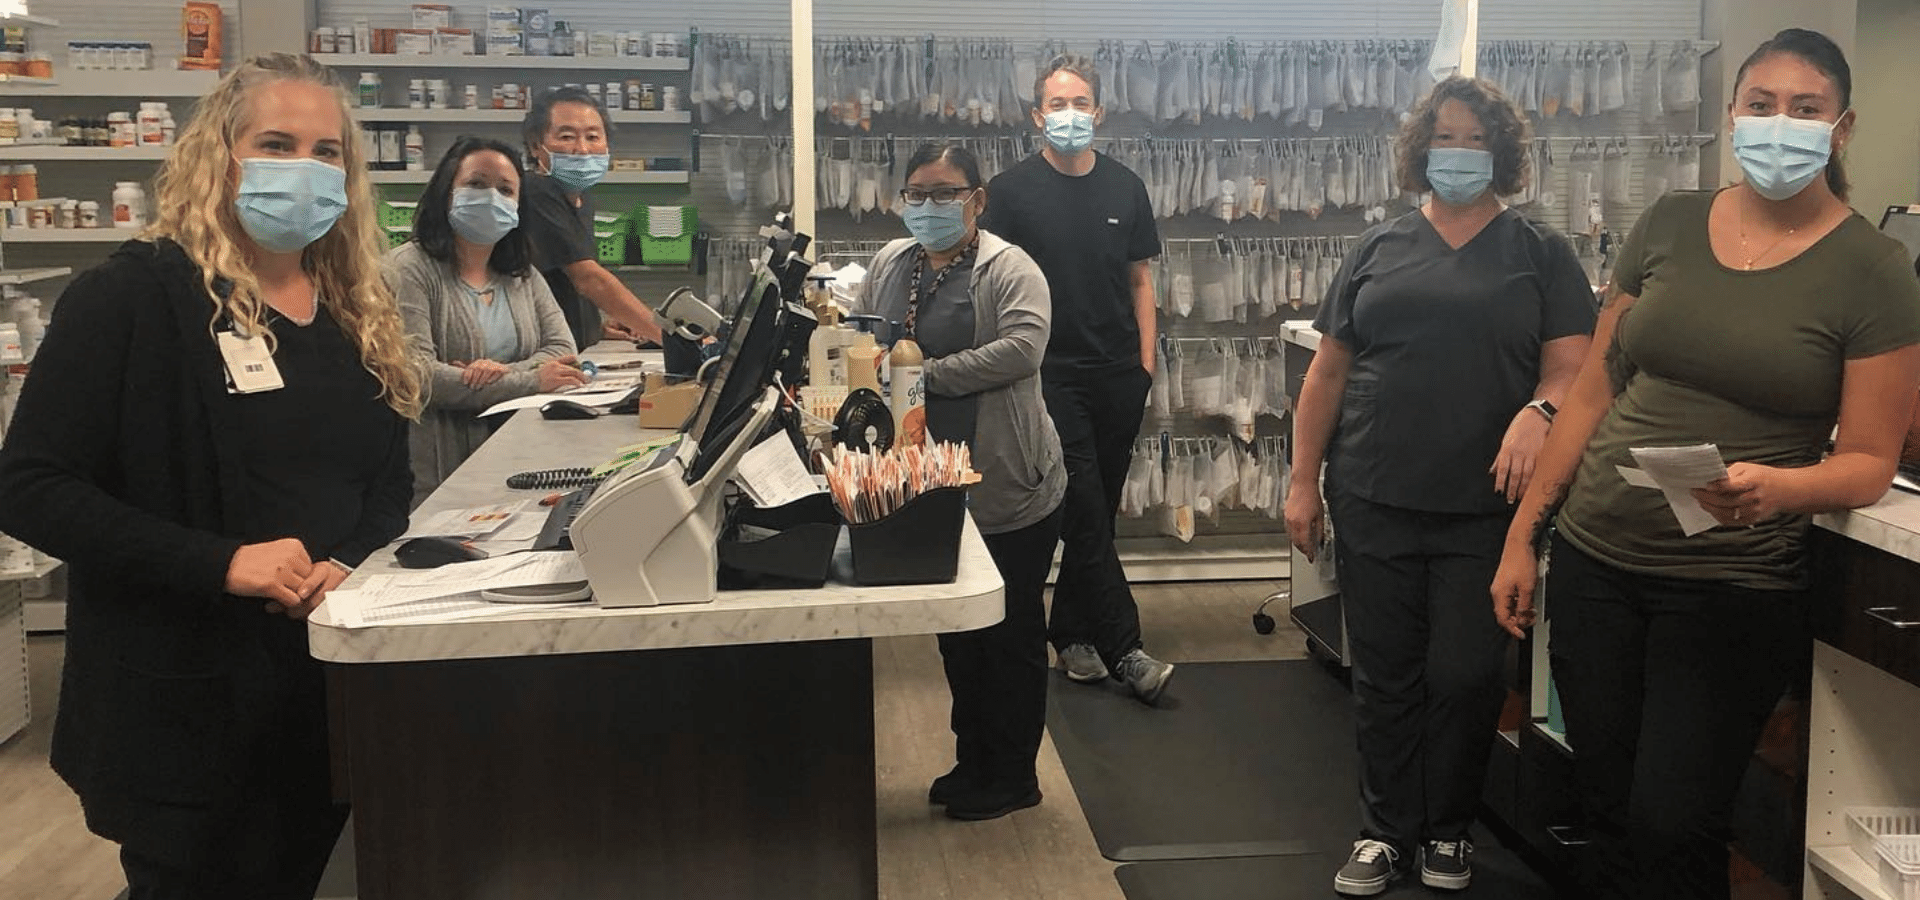 Staff in pharmacy setting with masks.